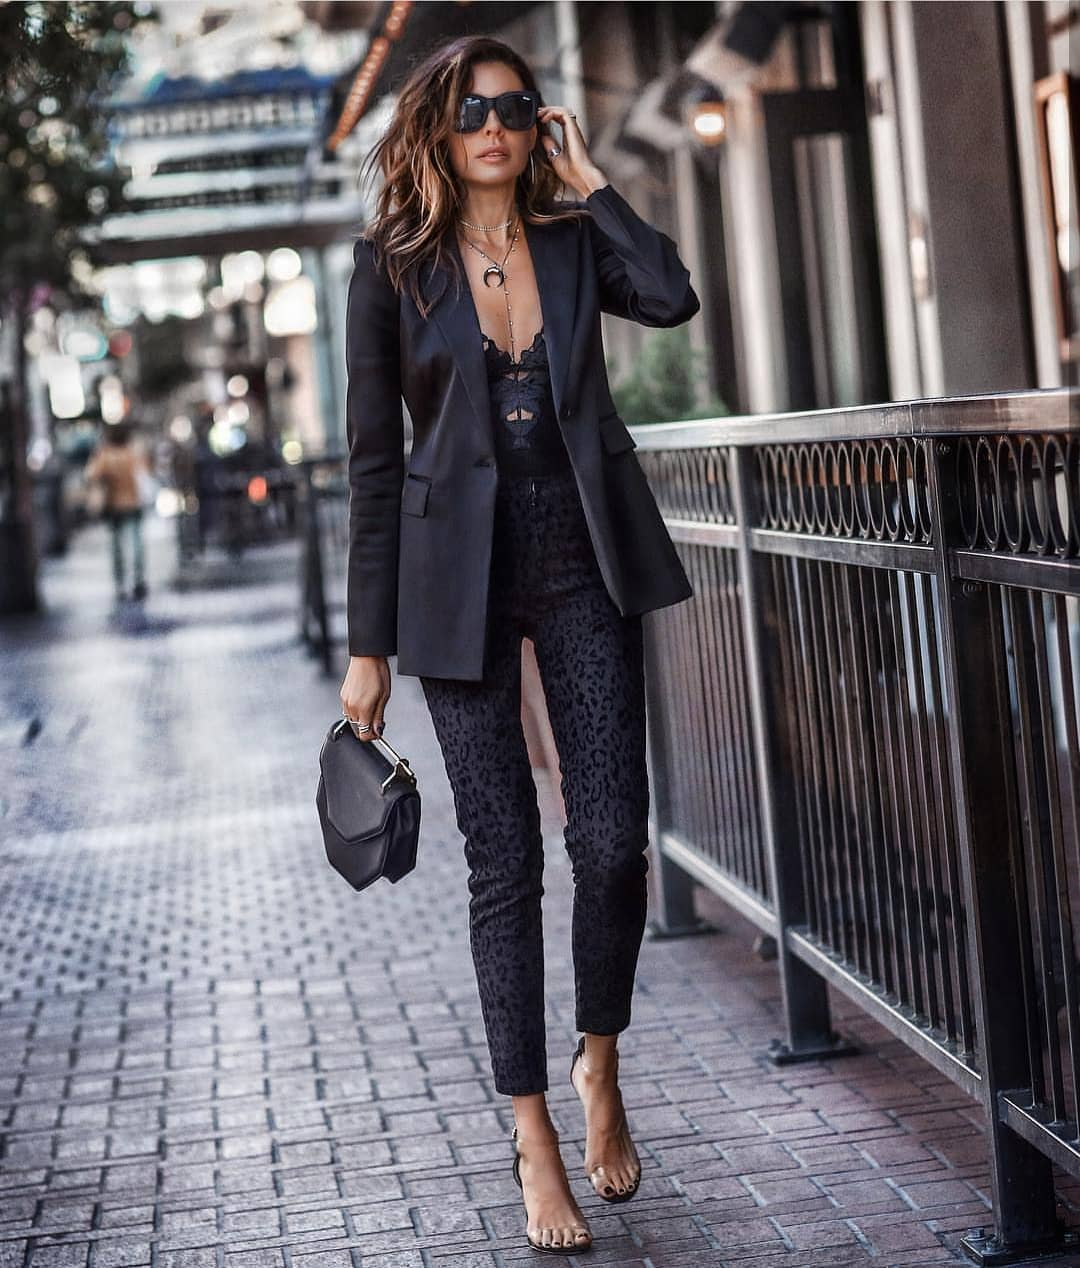 Black Blazer With Black Bodysuit And Leopard Print Black Pants For Fall 2020